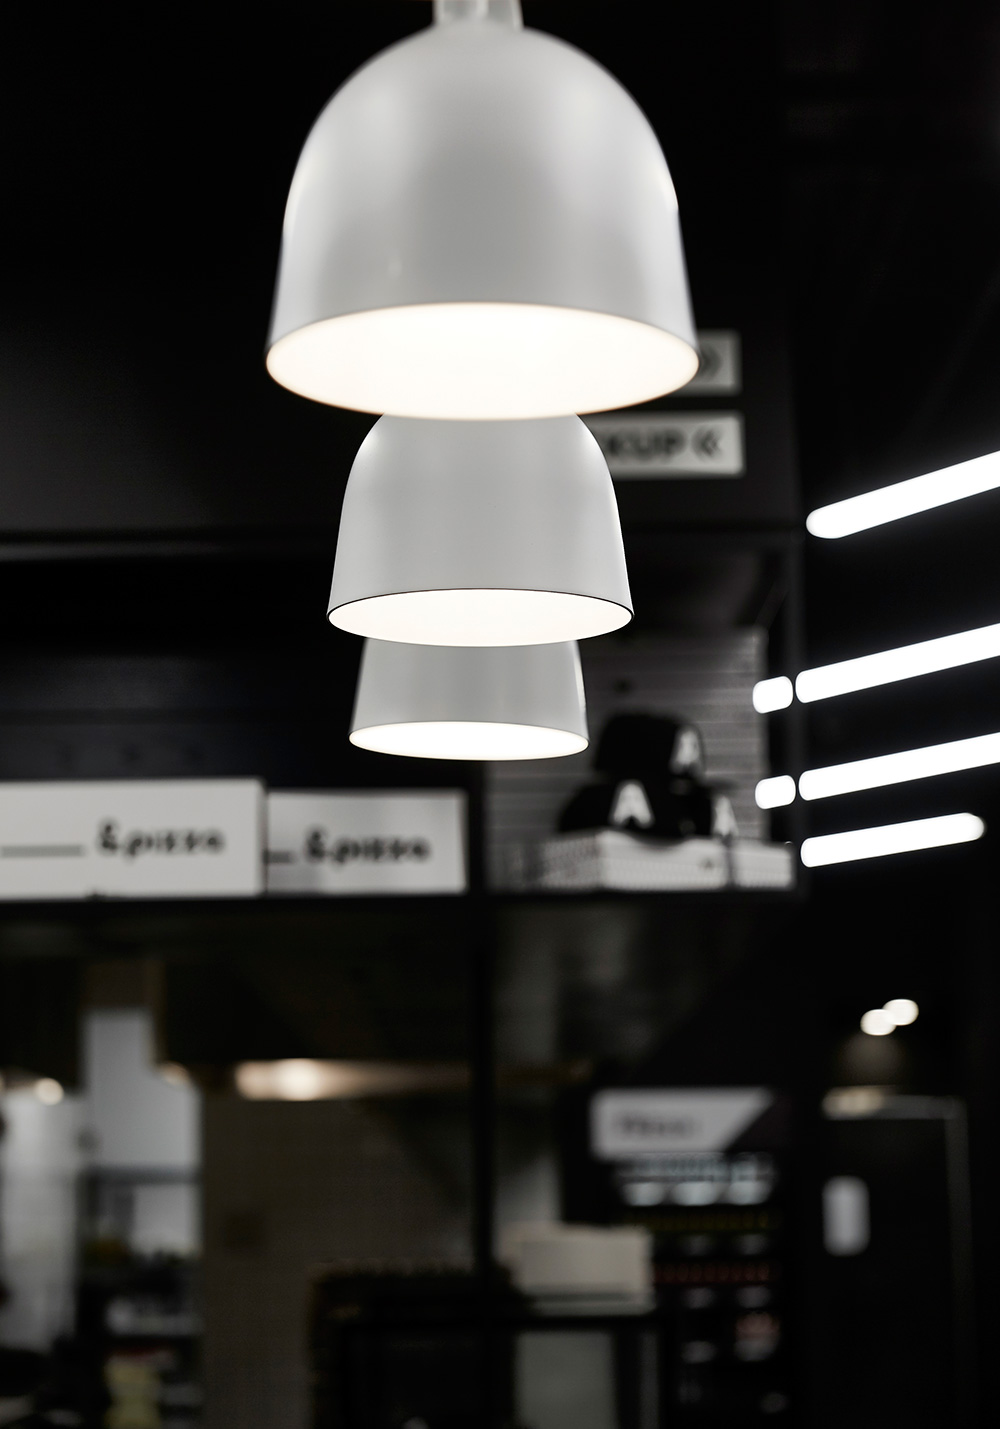 EAU-&Pizza-Astor-light-detail.jpg